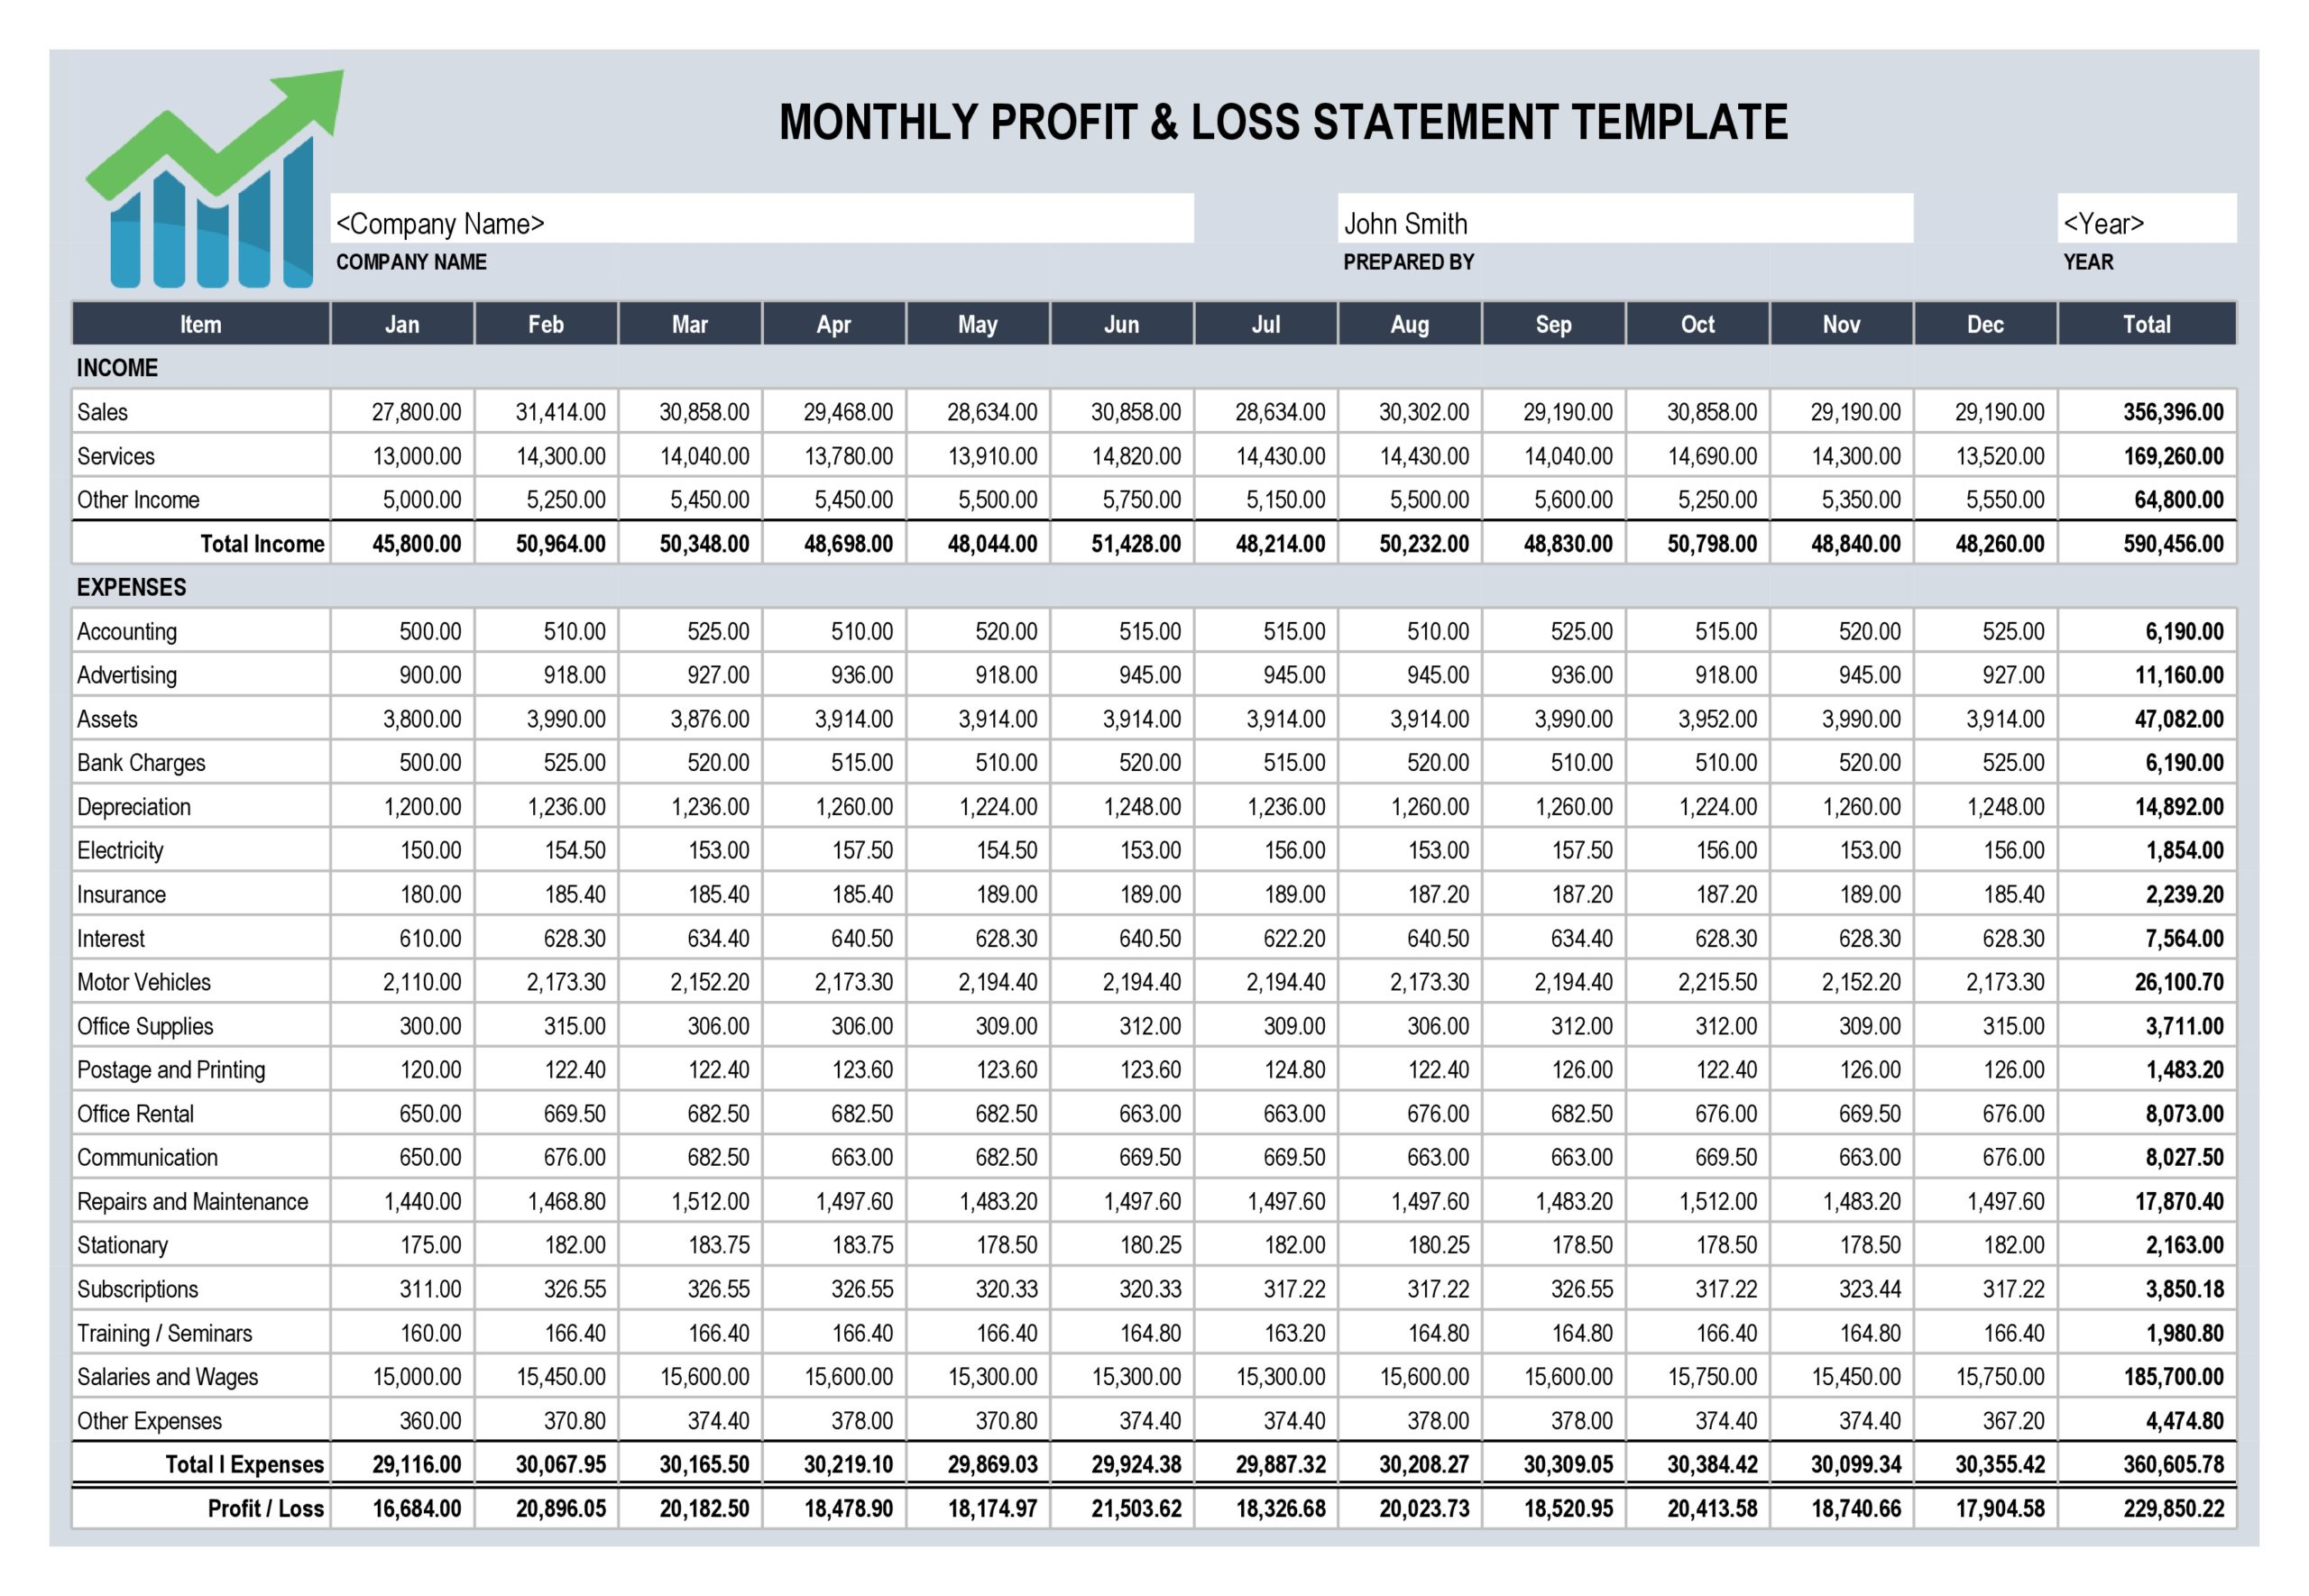 Free Monthly Profit & Loss Statement Template - TemplateLab